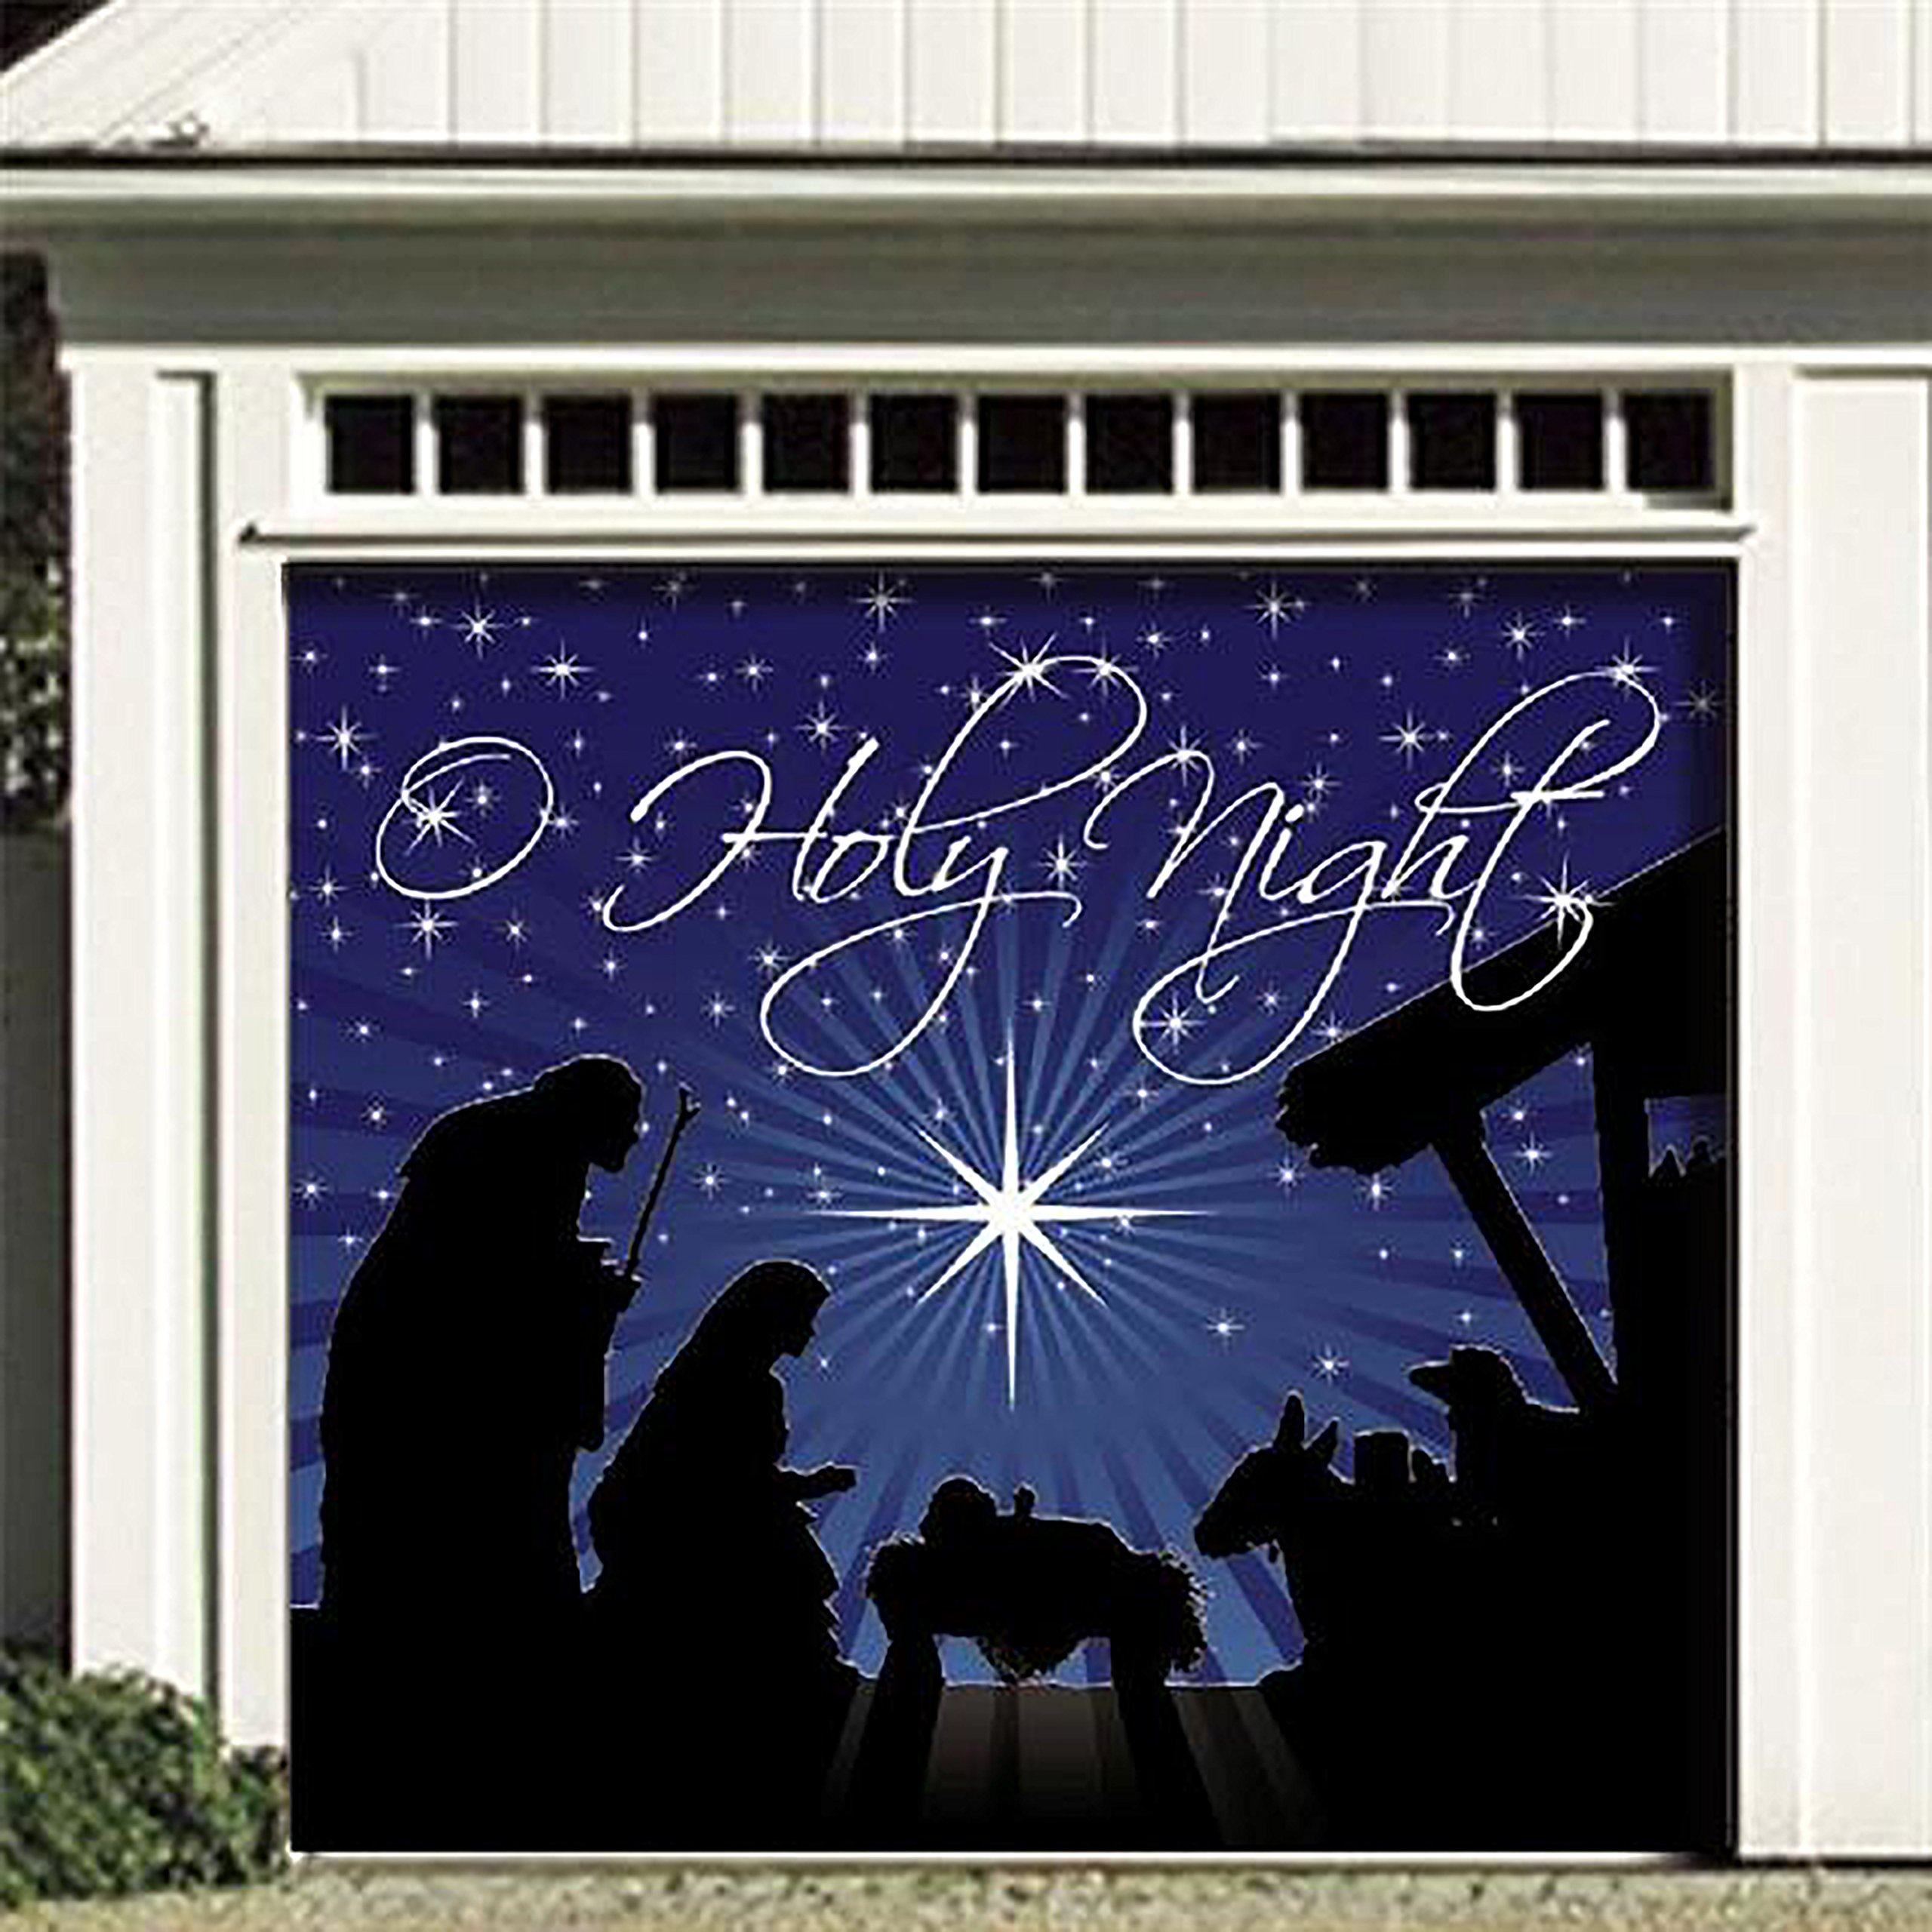 Outdoor Christmas Holiday Garage Door Banner Cover Mural Décoration - O'Holy Night Holiday Garage Door Banner Décor Sign 7'x8' by Victory Corps